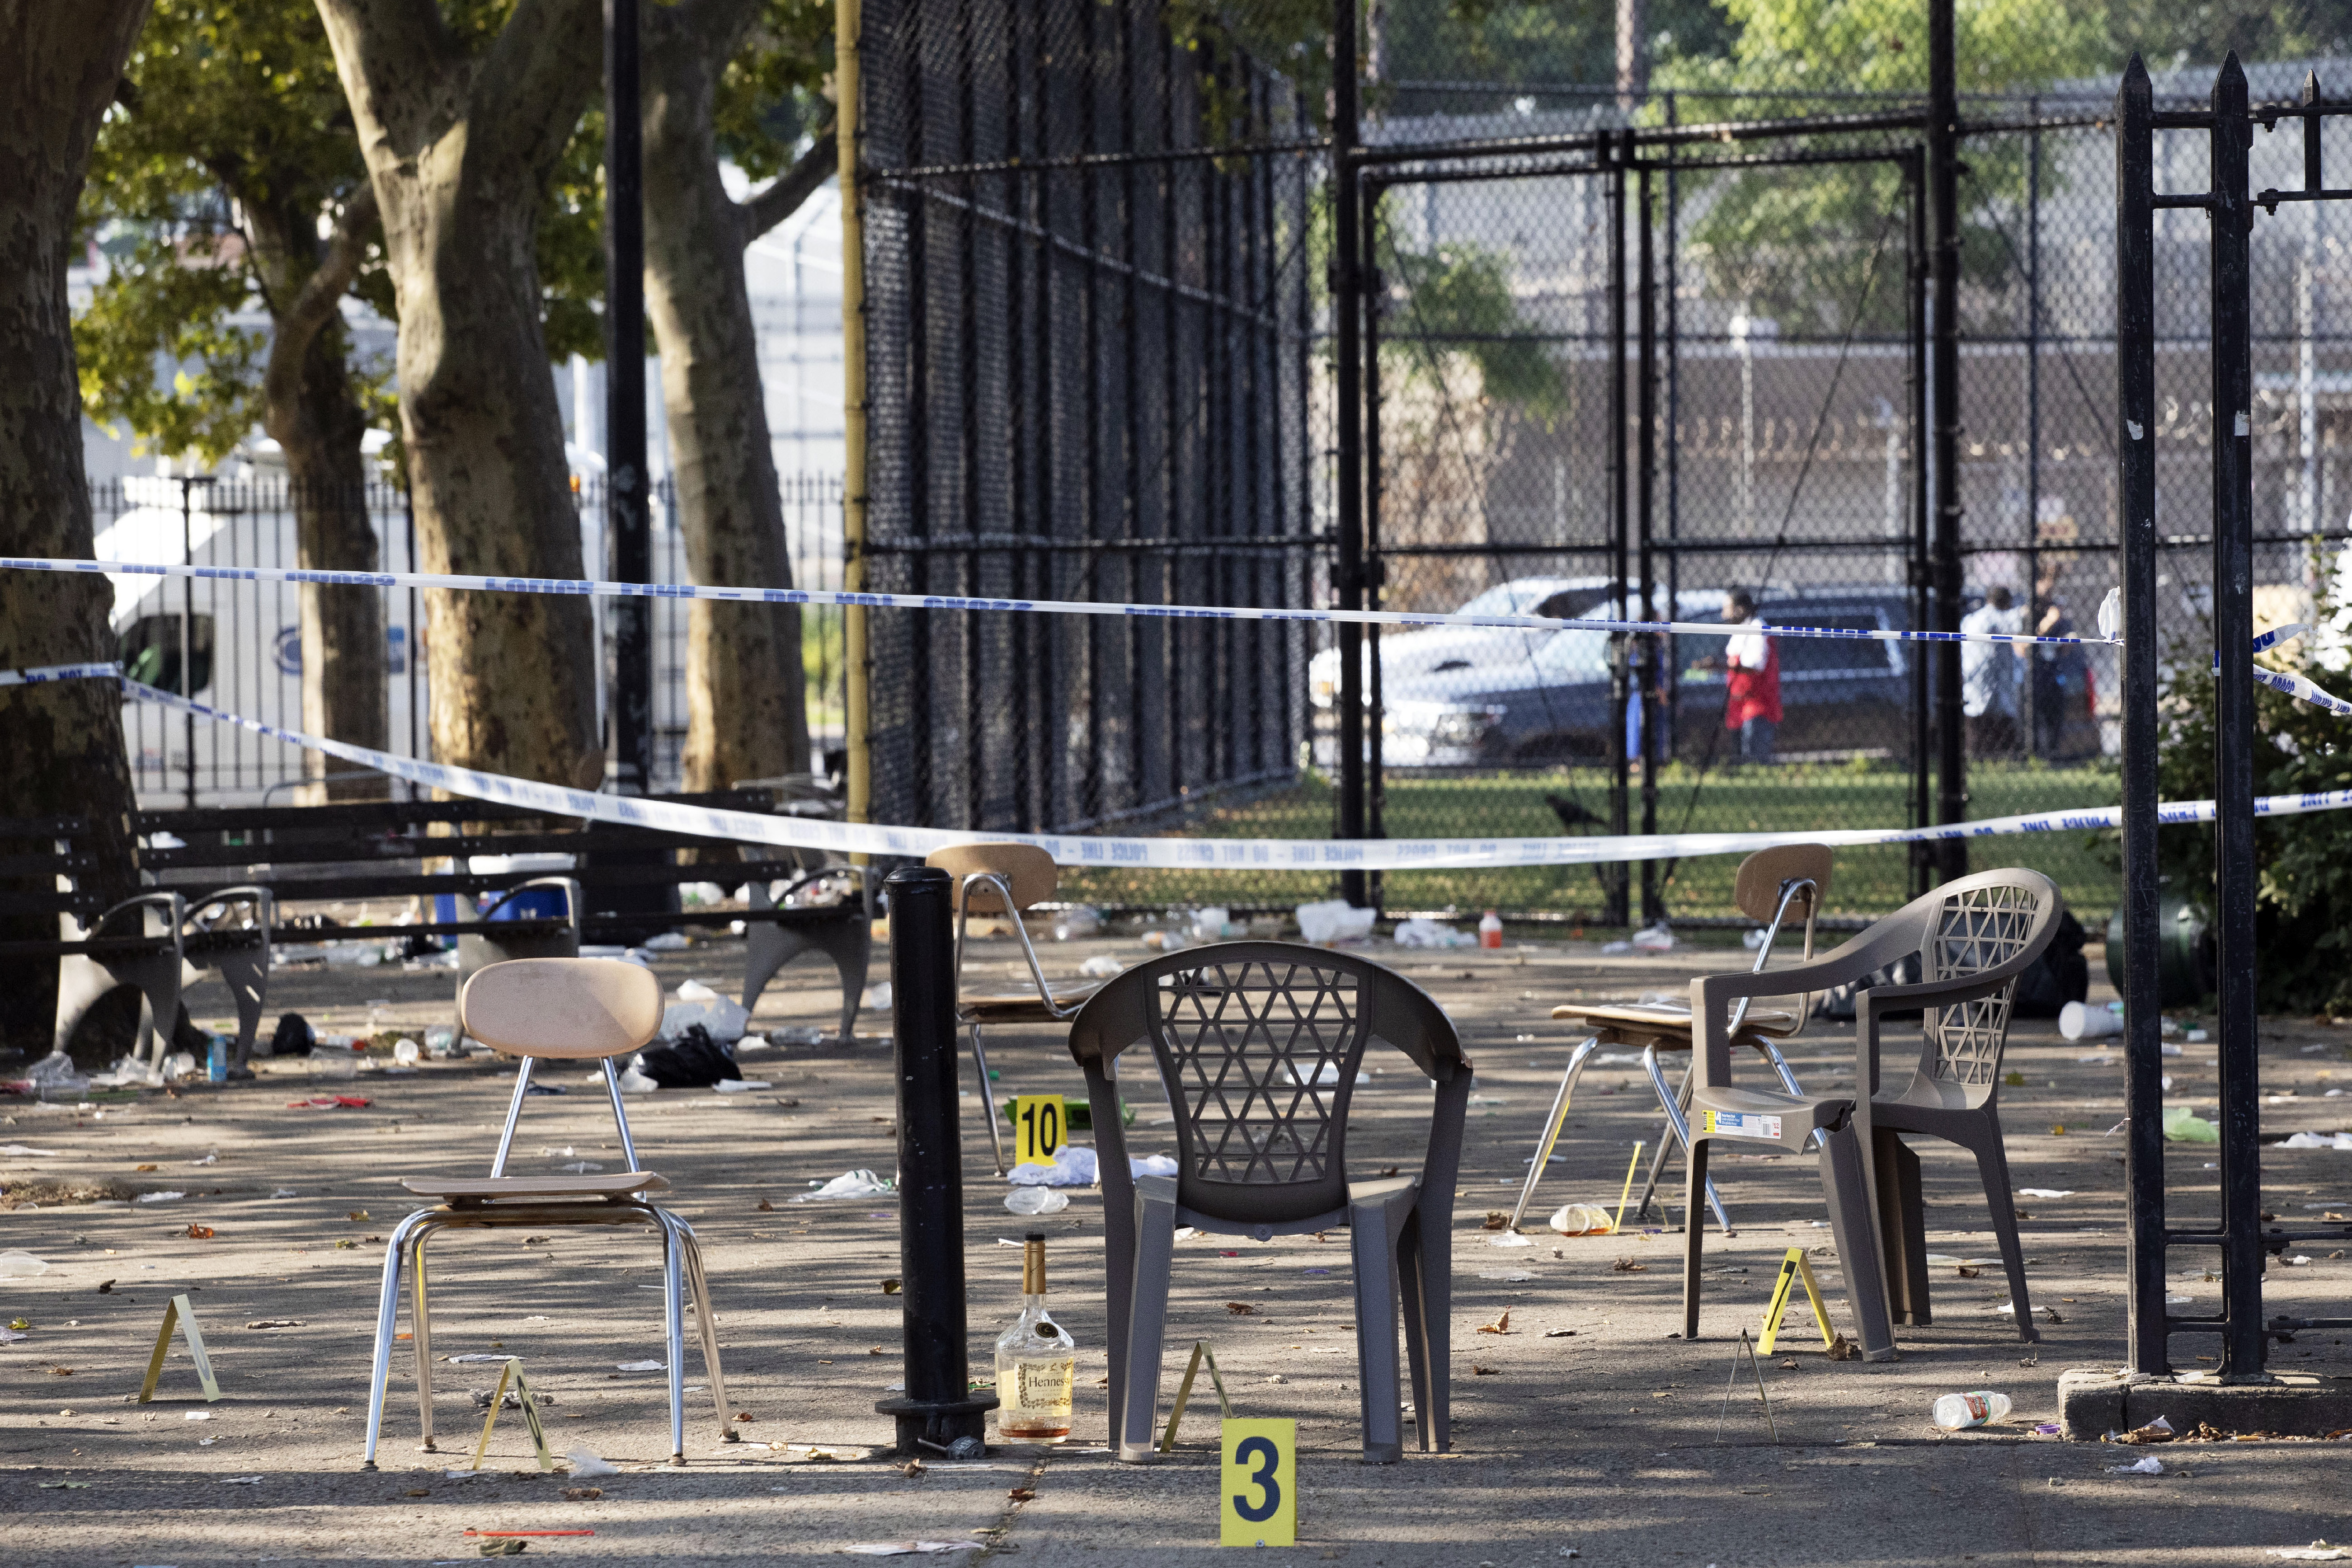 Block party shootout may have been gang related, police say